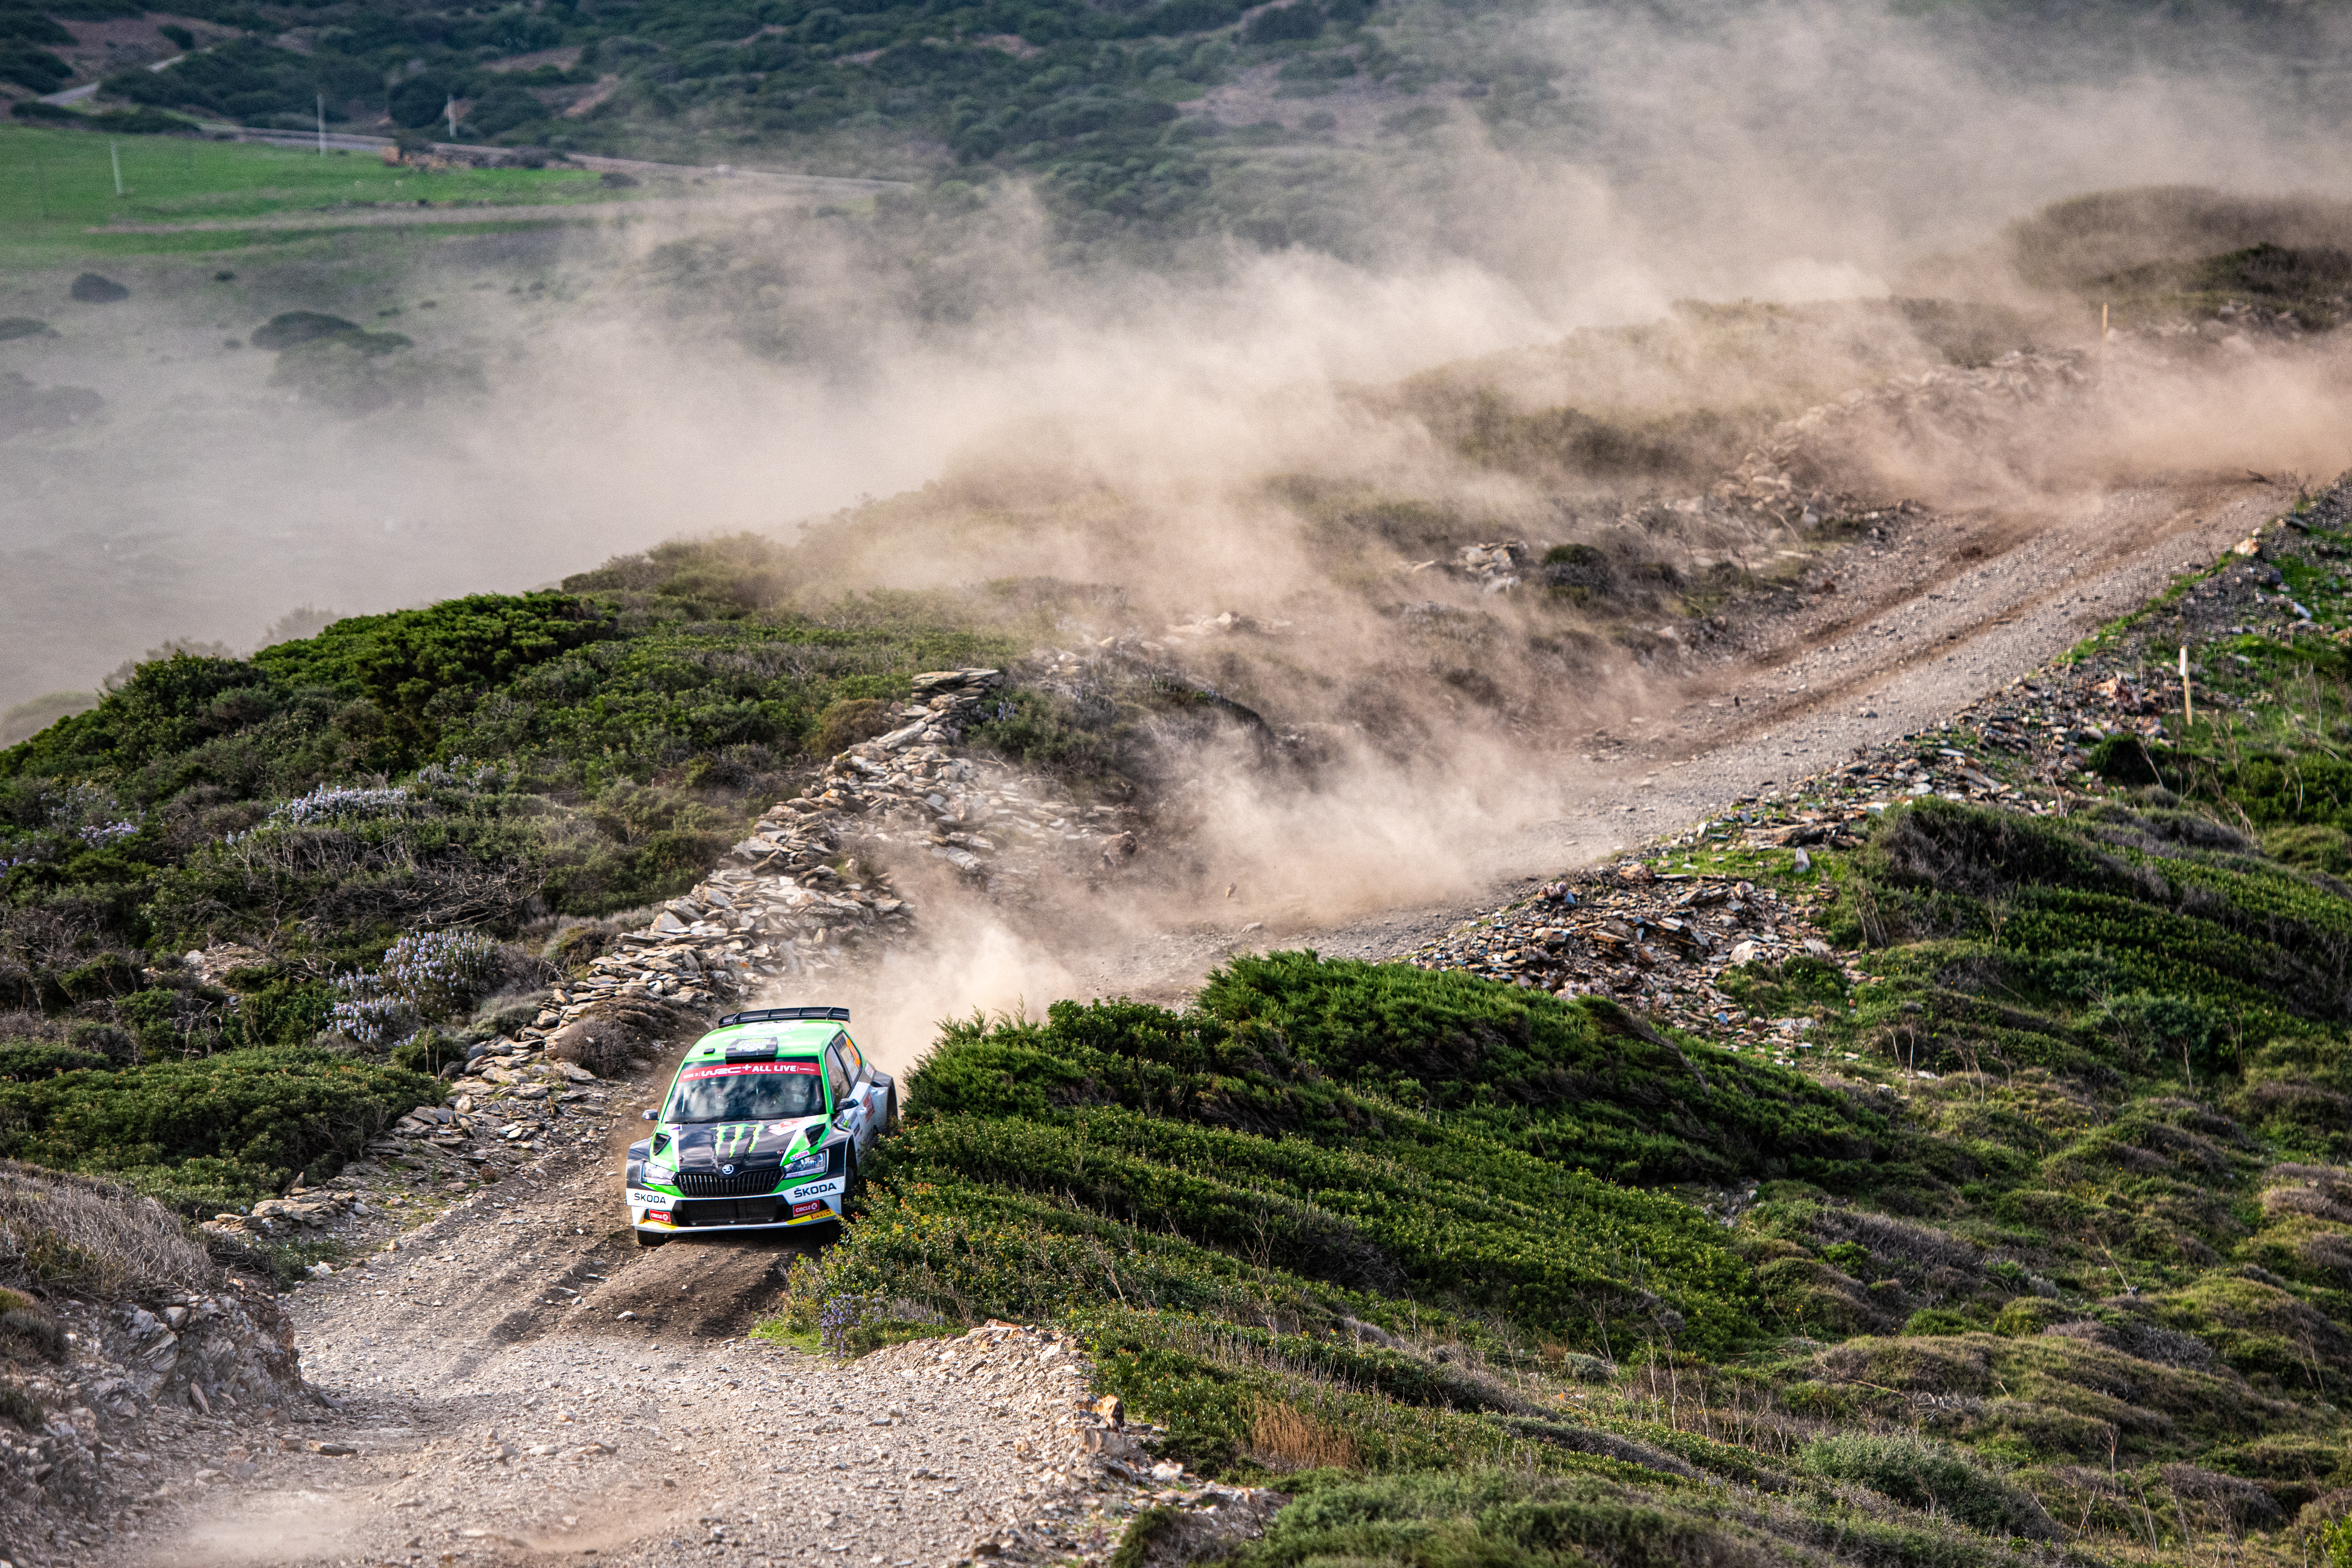 Rally Italia Sardegna: SKODA privateer Pontus Tidemand wins WRC2 and extends overall lead - Image 4